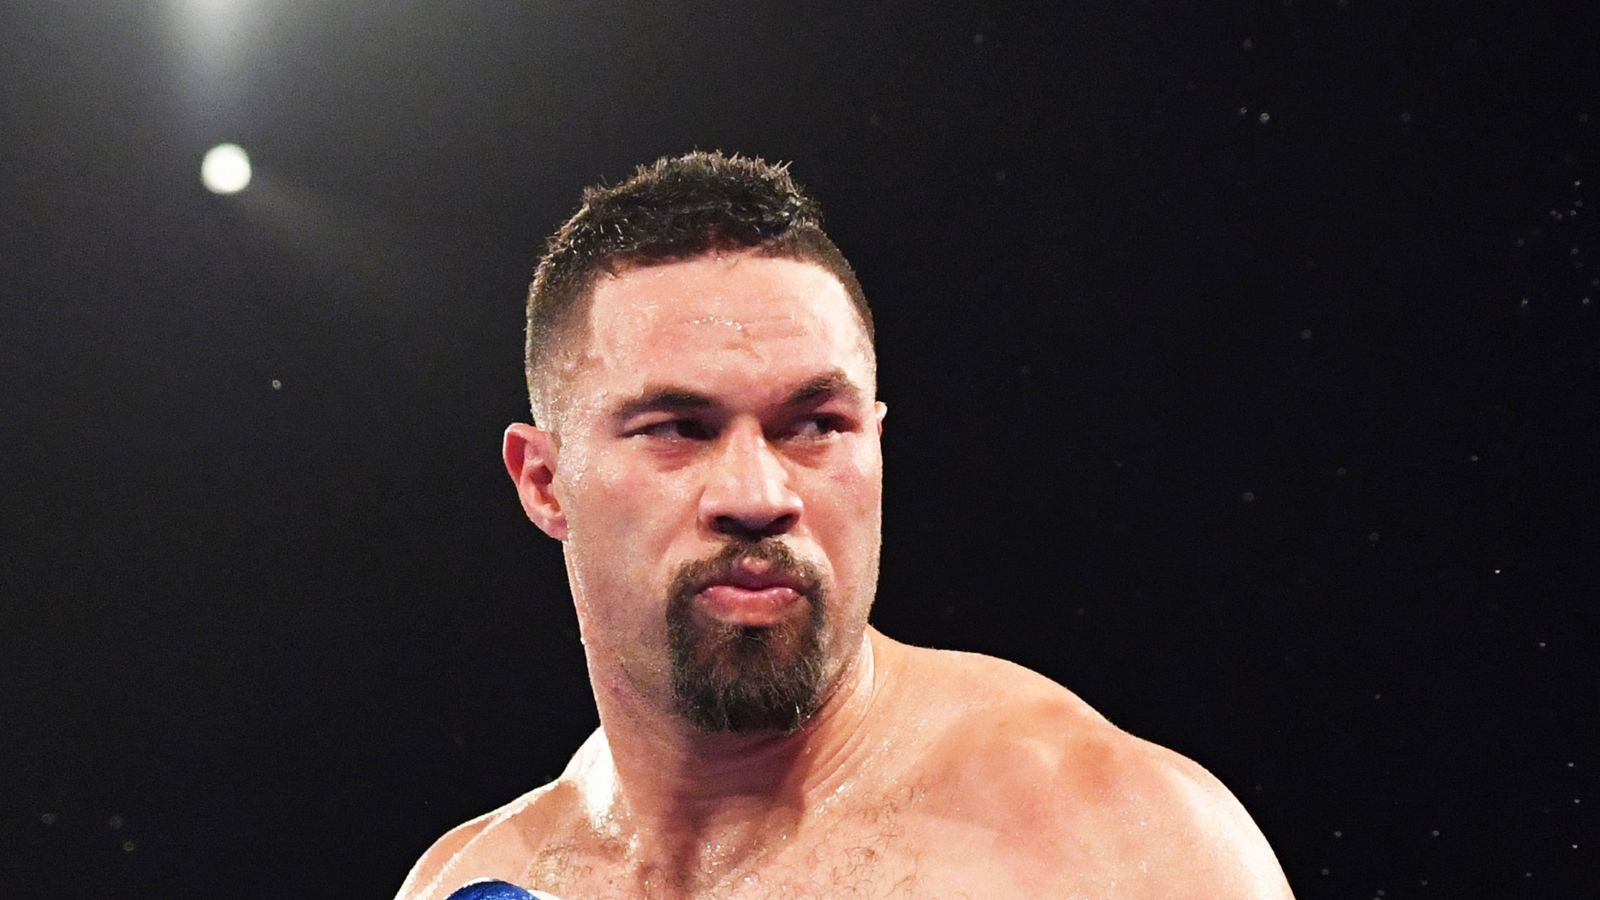 Joseph Parker would be side A in a WBO title fight with Oleksandr Usyk, says David Higgins | Boxing news